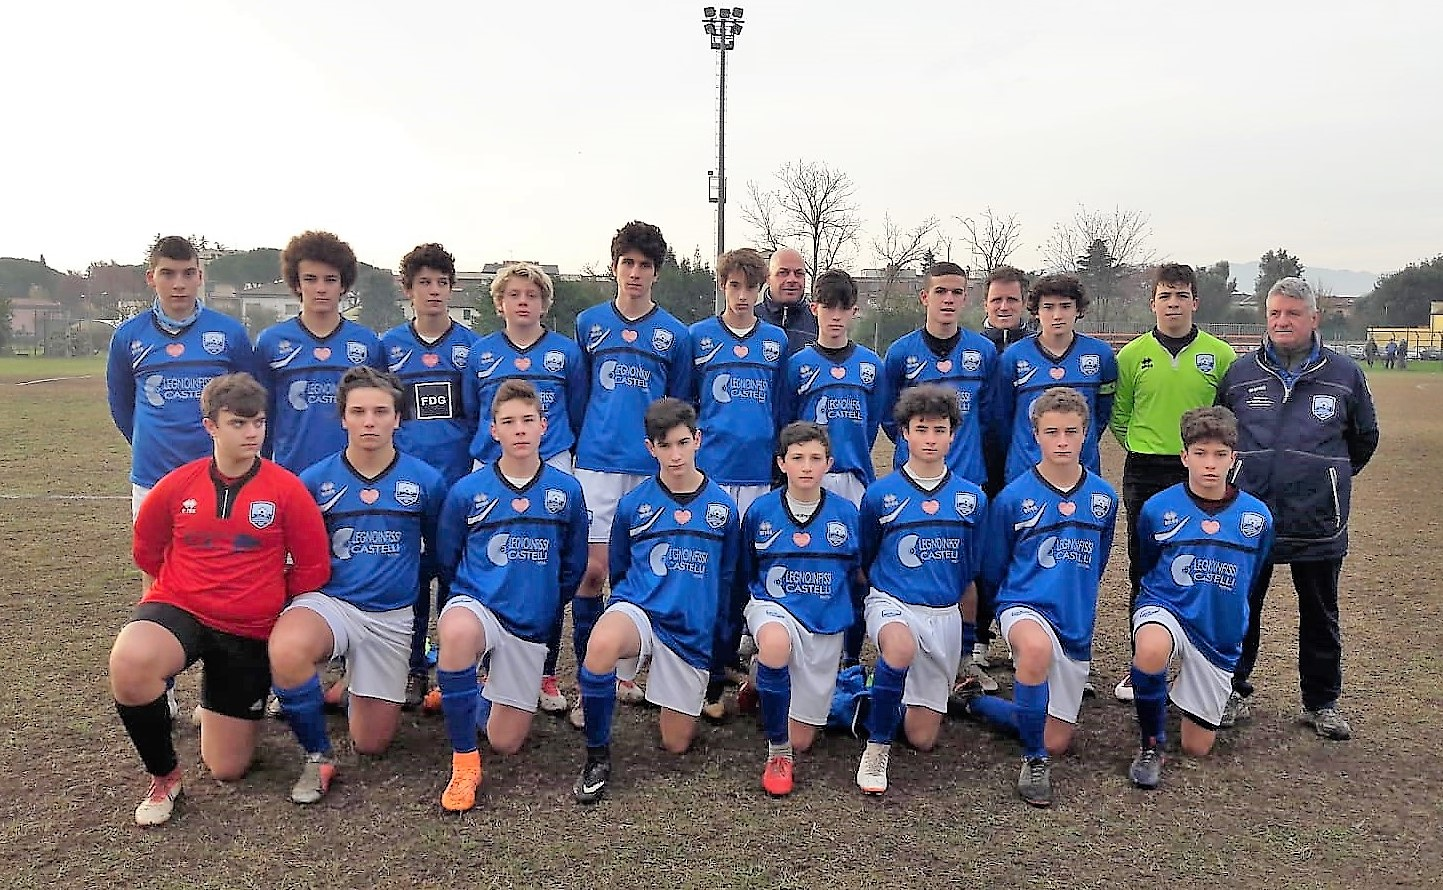 Campionato Provinciale Allievi Under 16